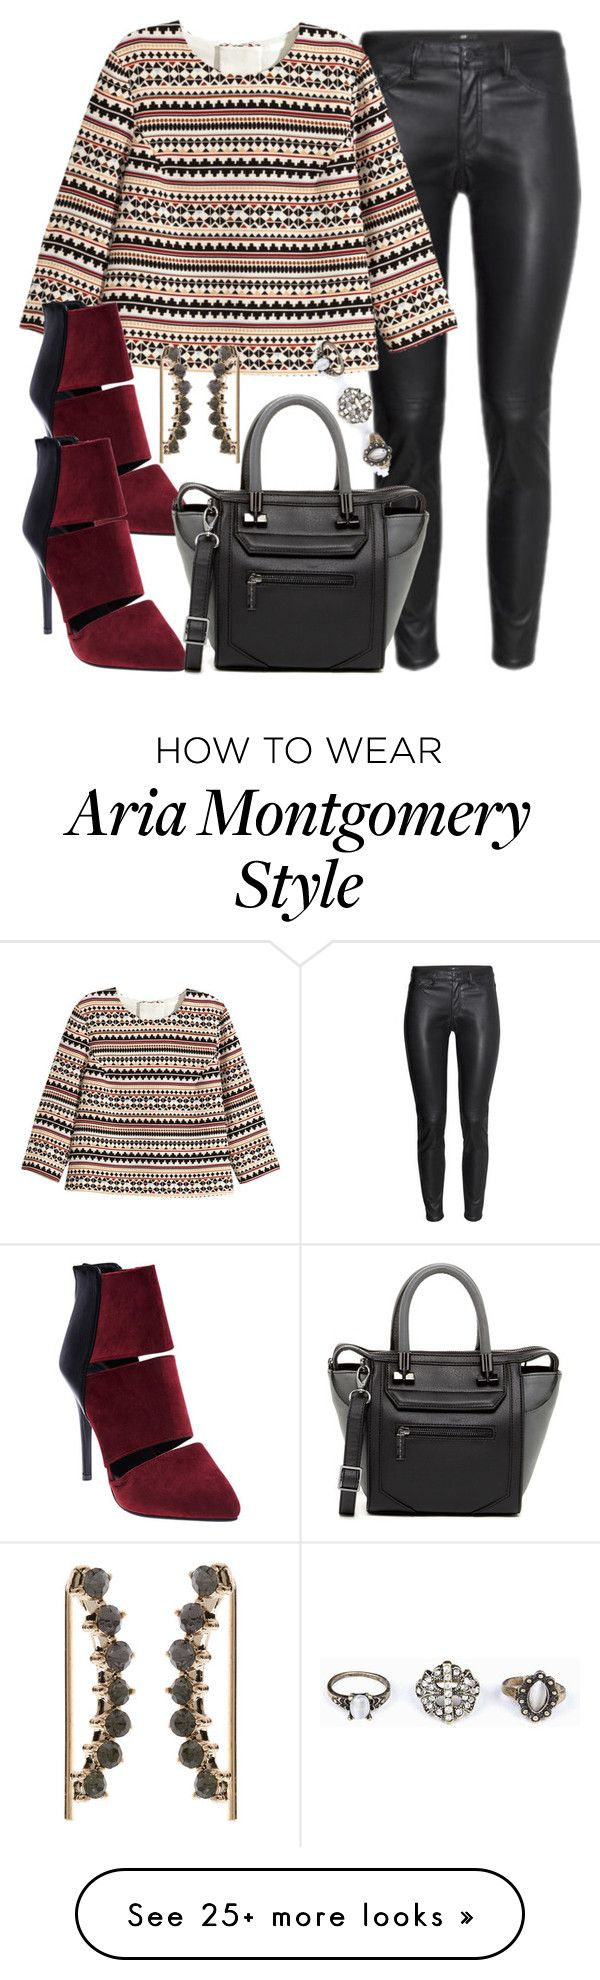 """""""Aria Montgomery inspired outfit"""" by liarsstyle on Polyvore featuring H&M, Wet Seal, Danielle Nicole, Accessorize, Work and Semi"""